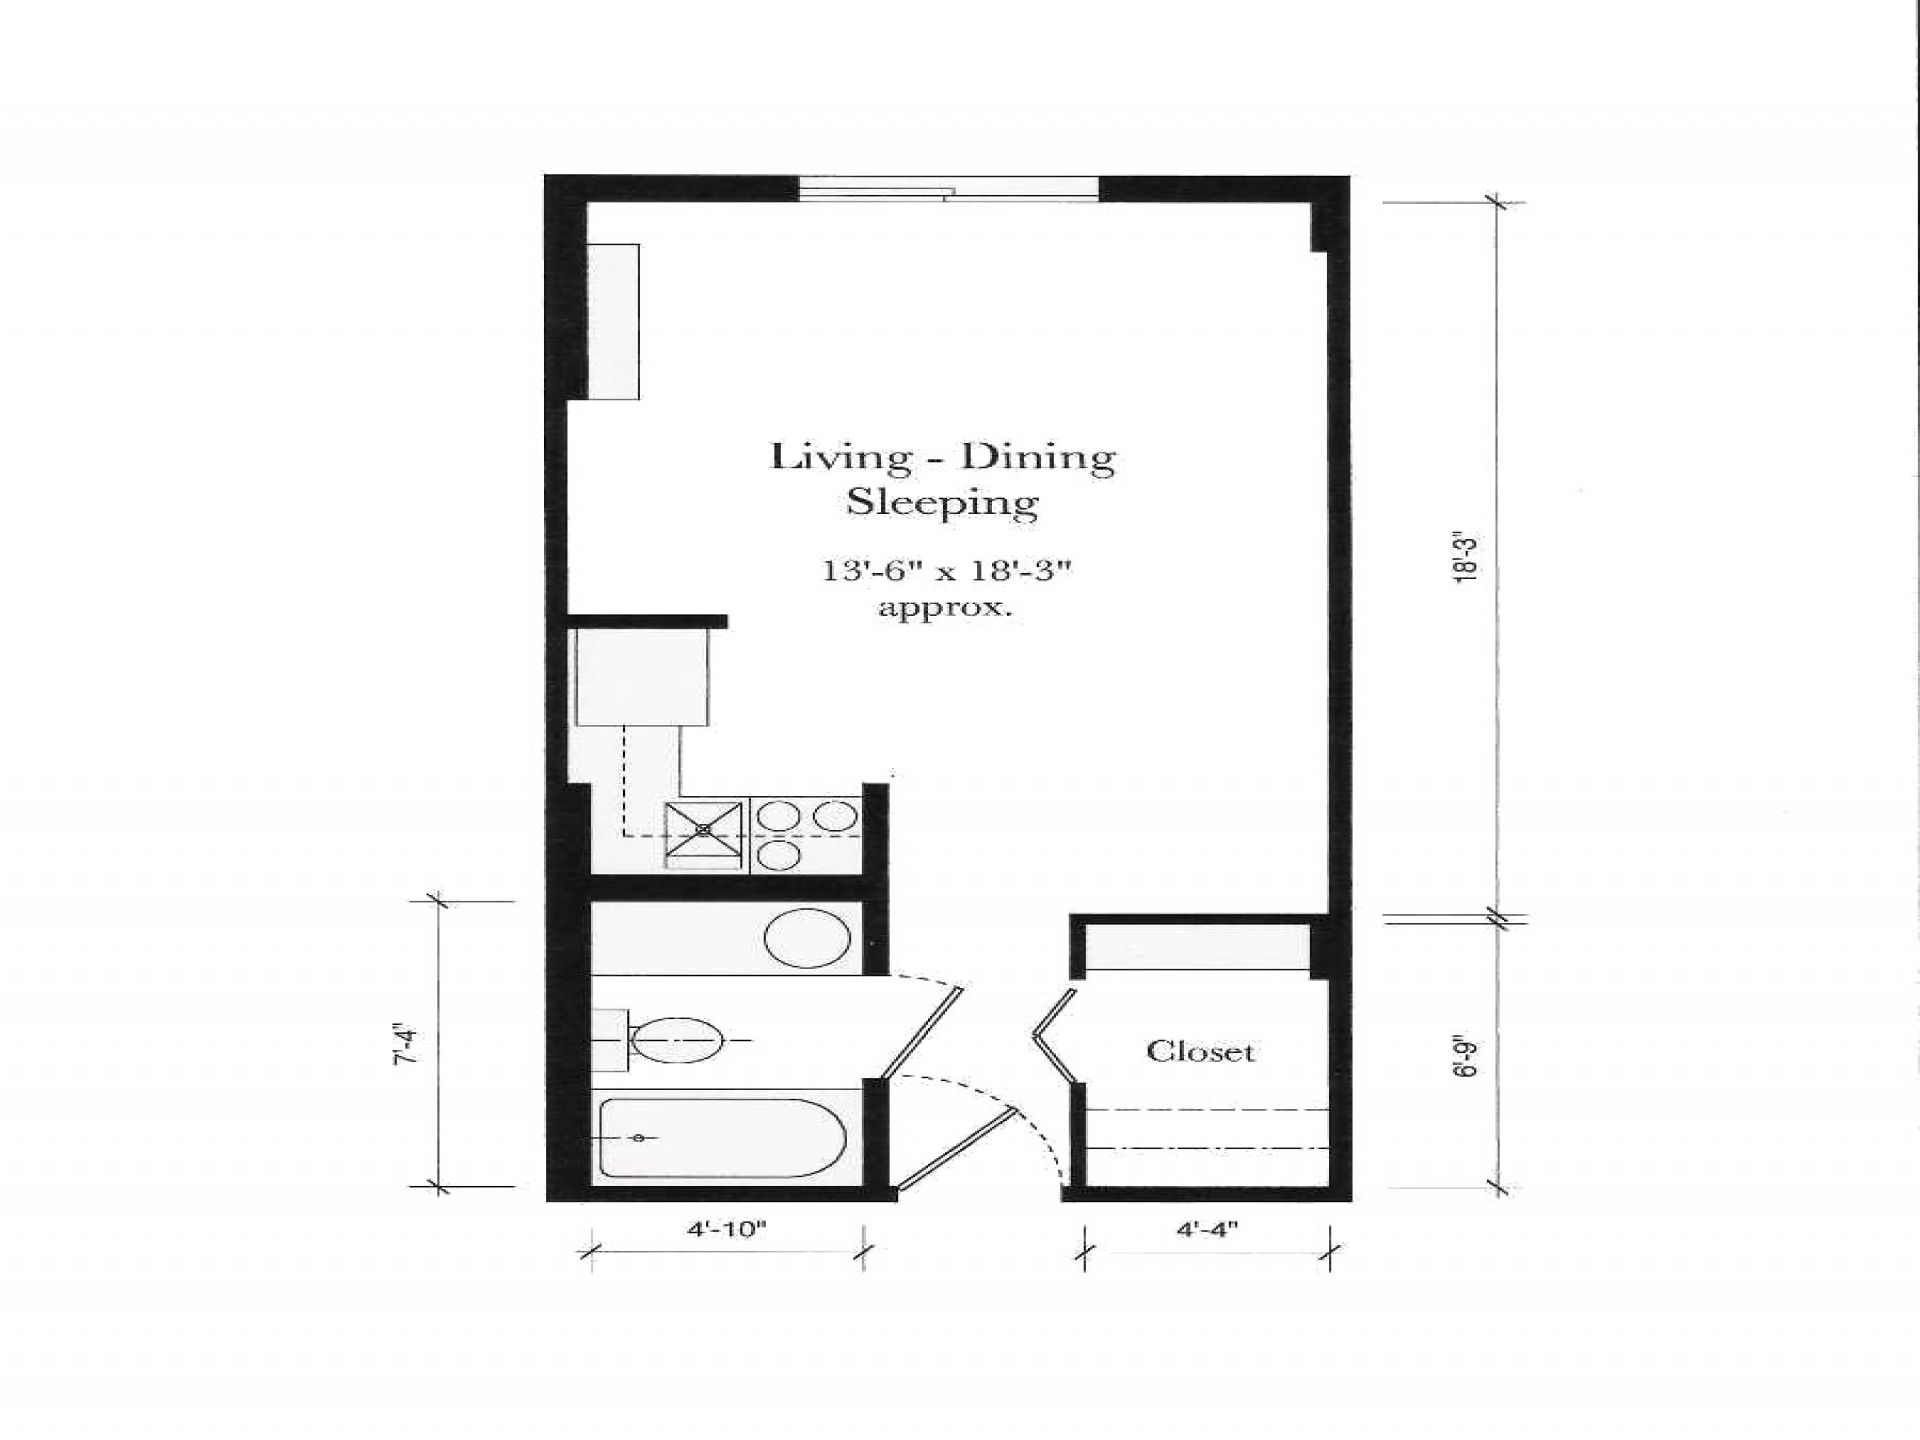 Apartment studio floor plan simple floor design studio for Efficiency apartment floor plans